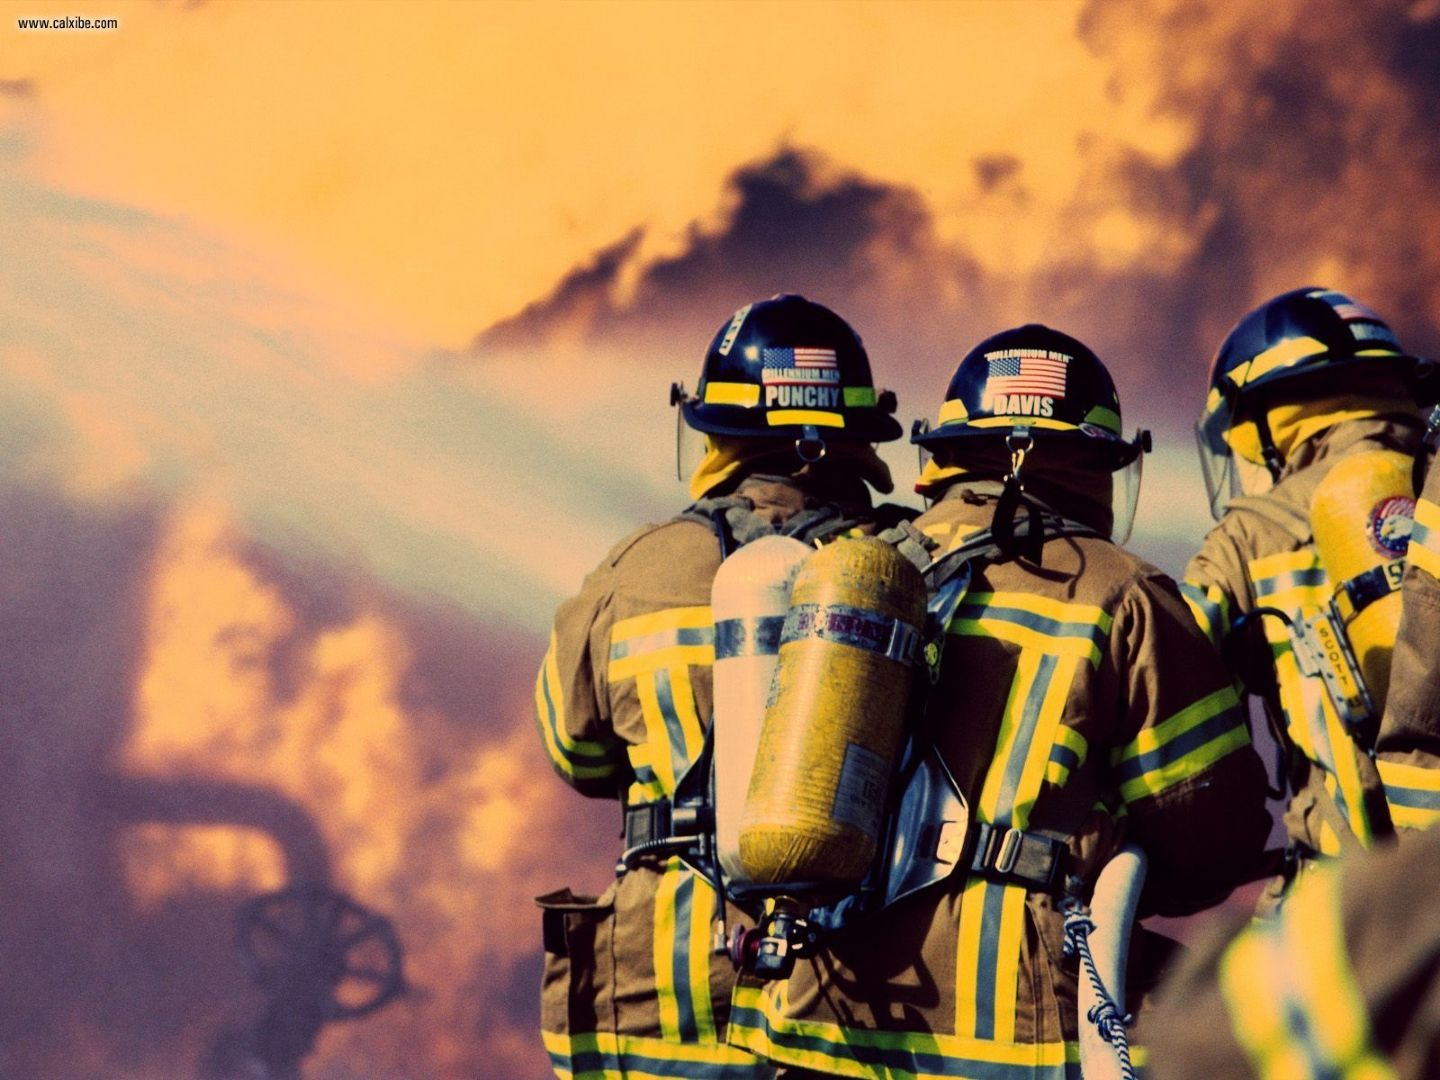 Miscellaneous Firefighters desktop wallpaper nr 21108 1440x1080